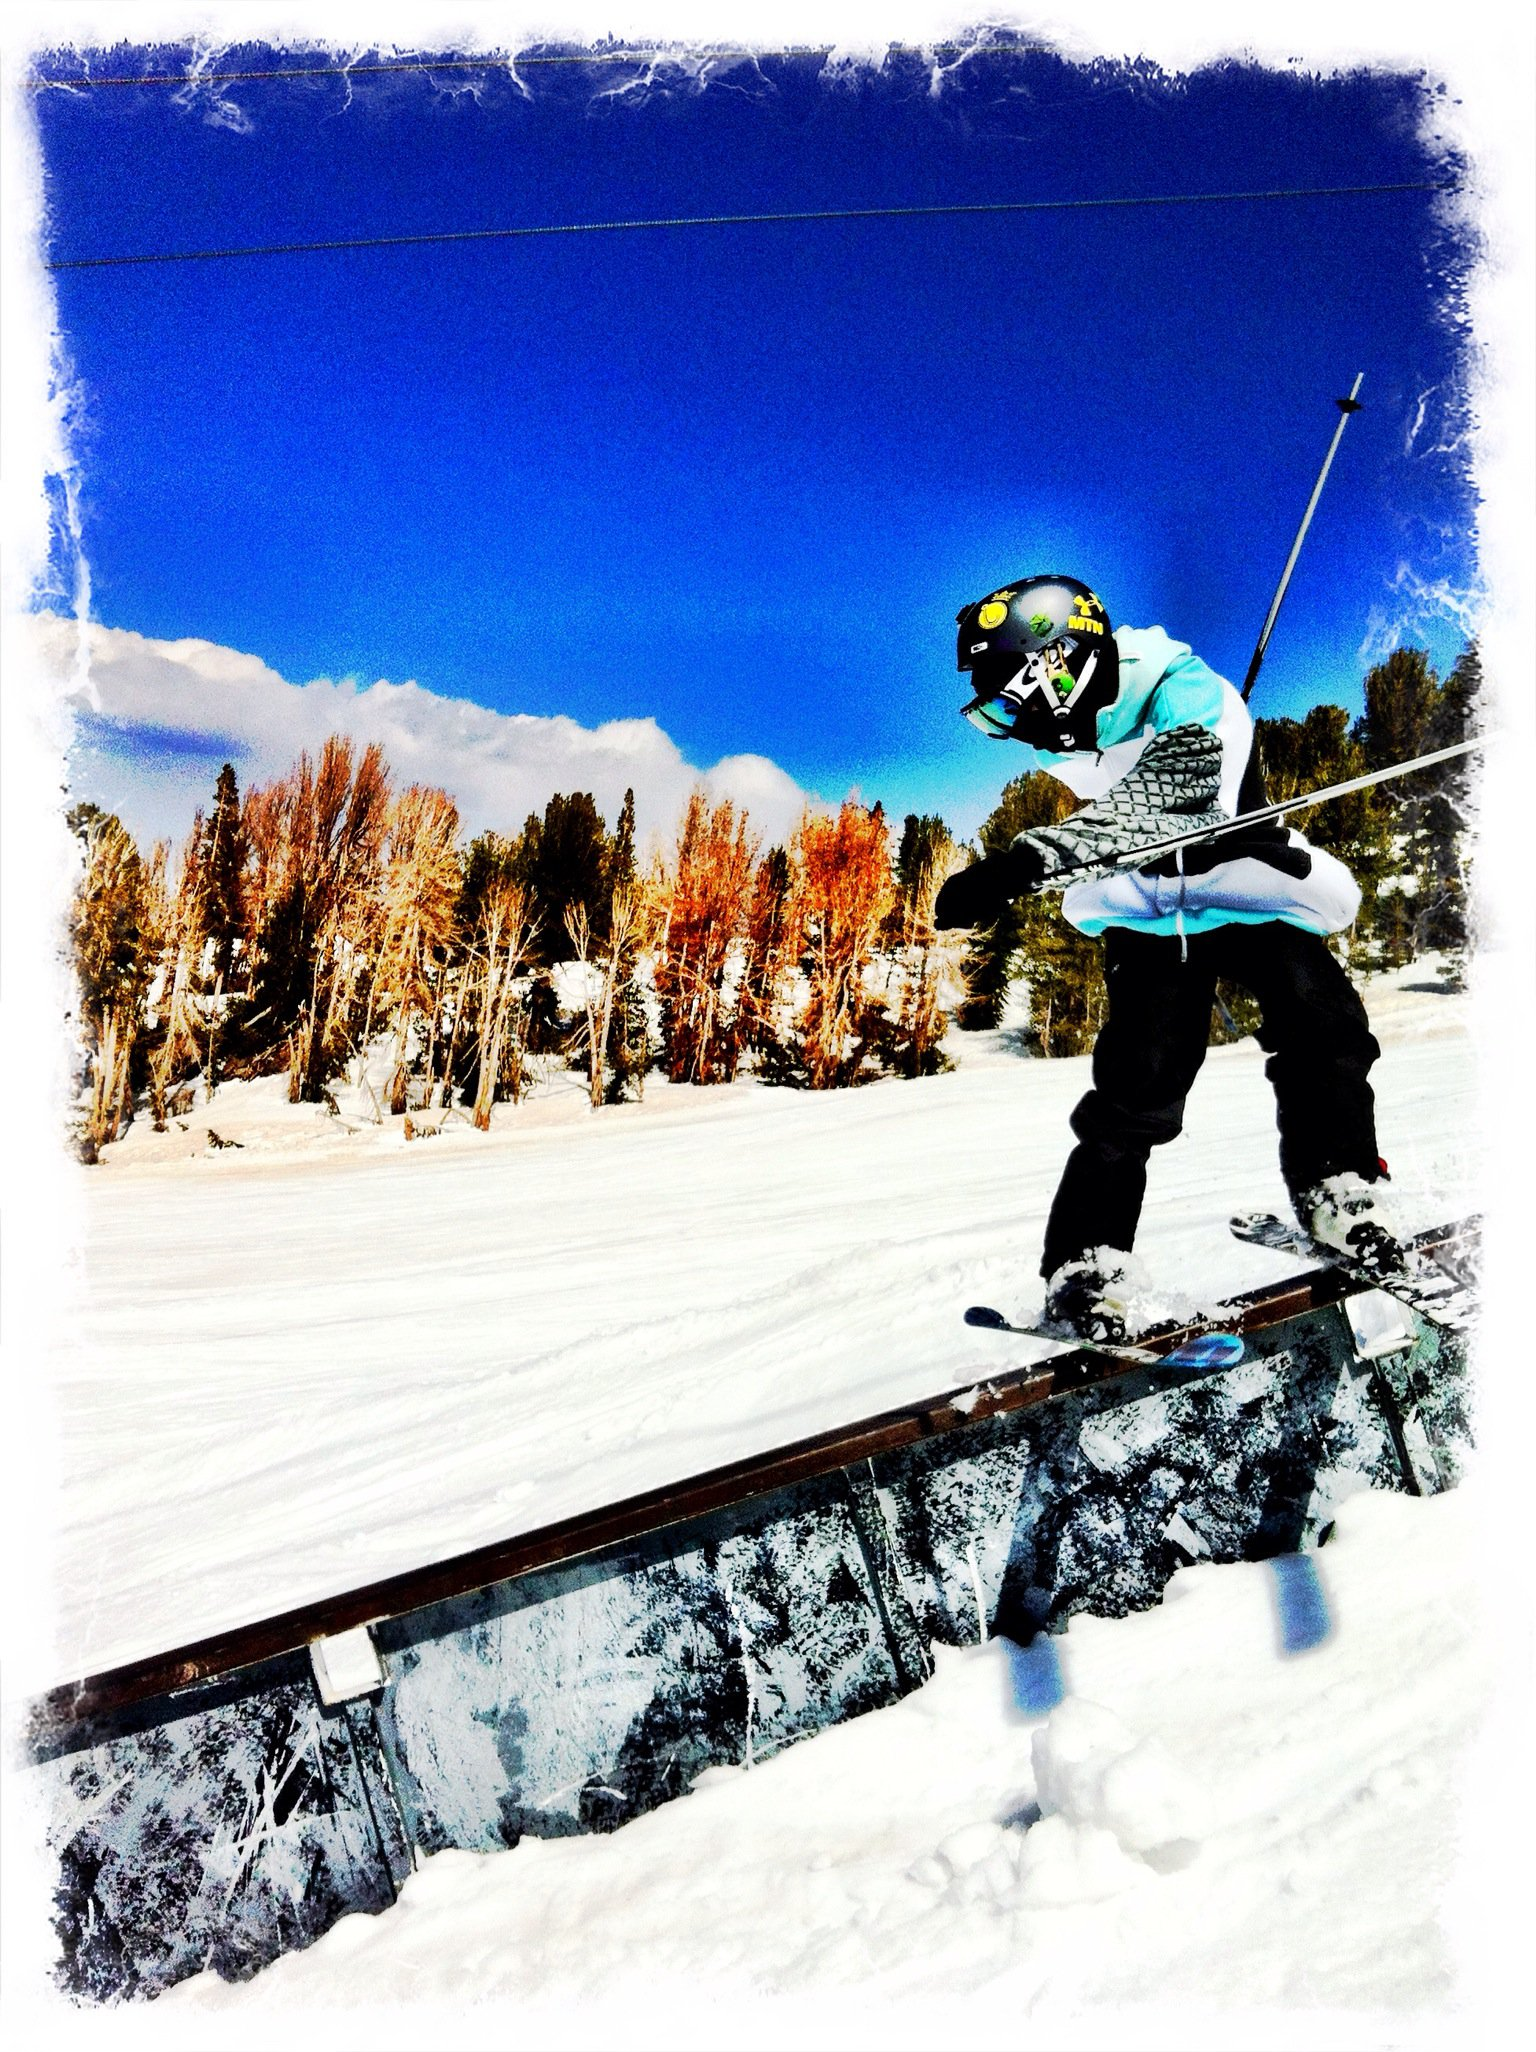 Mammoth down rail!